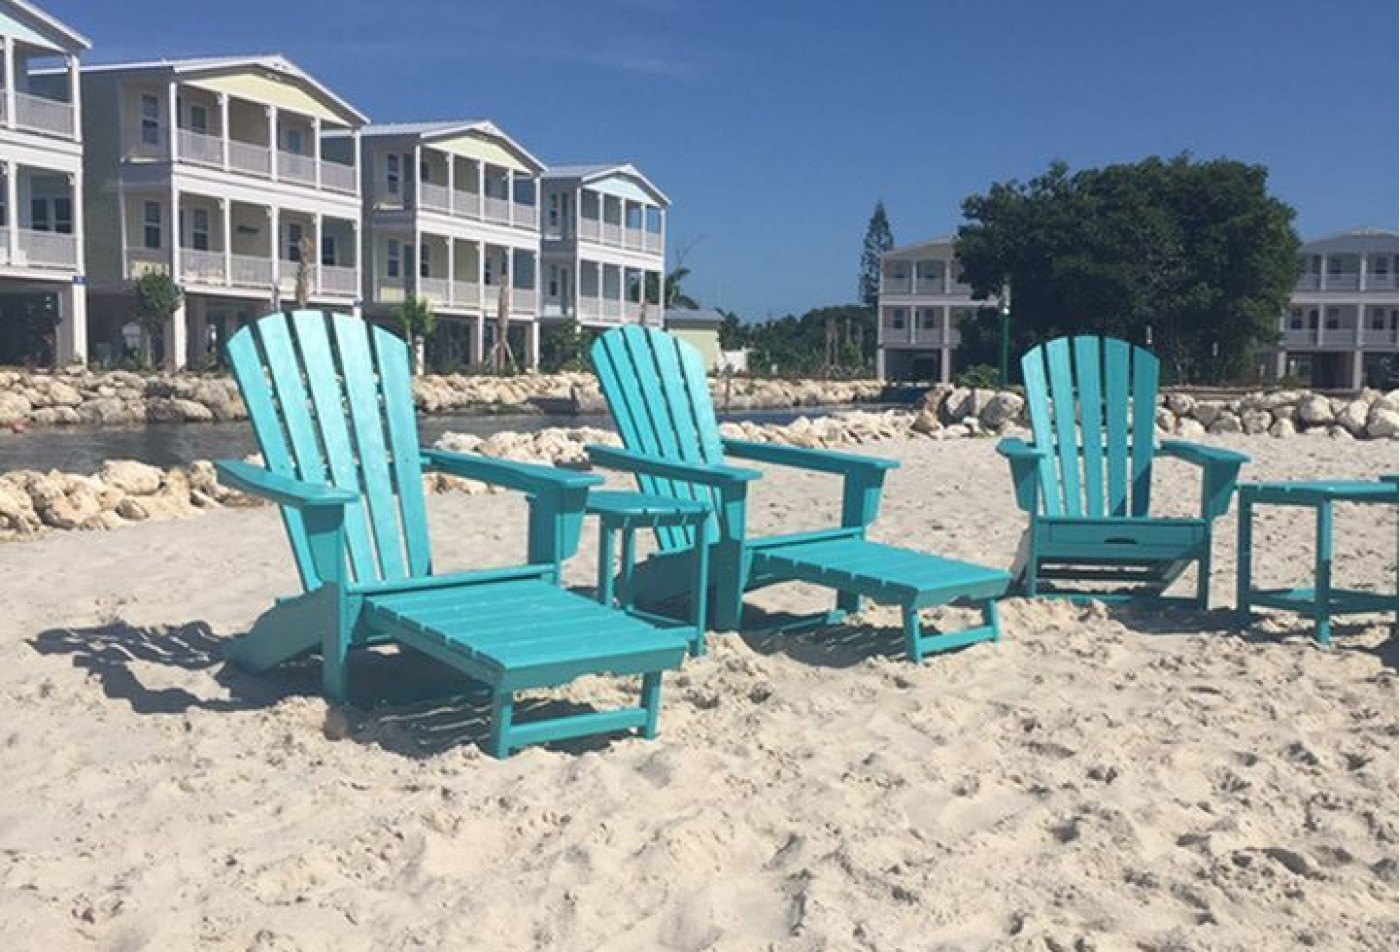 Blue adirondack chairs seating looking out over the ocean.